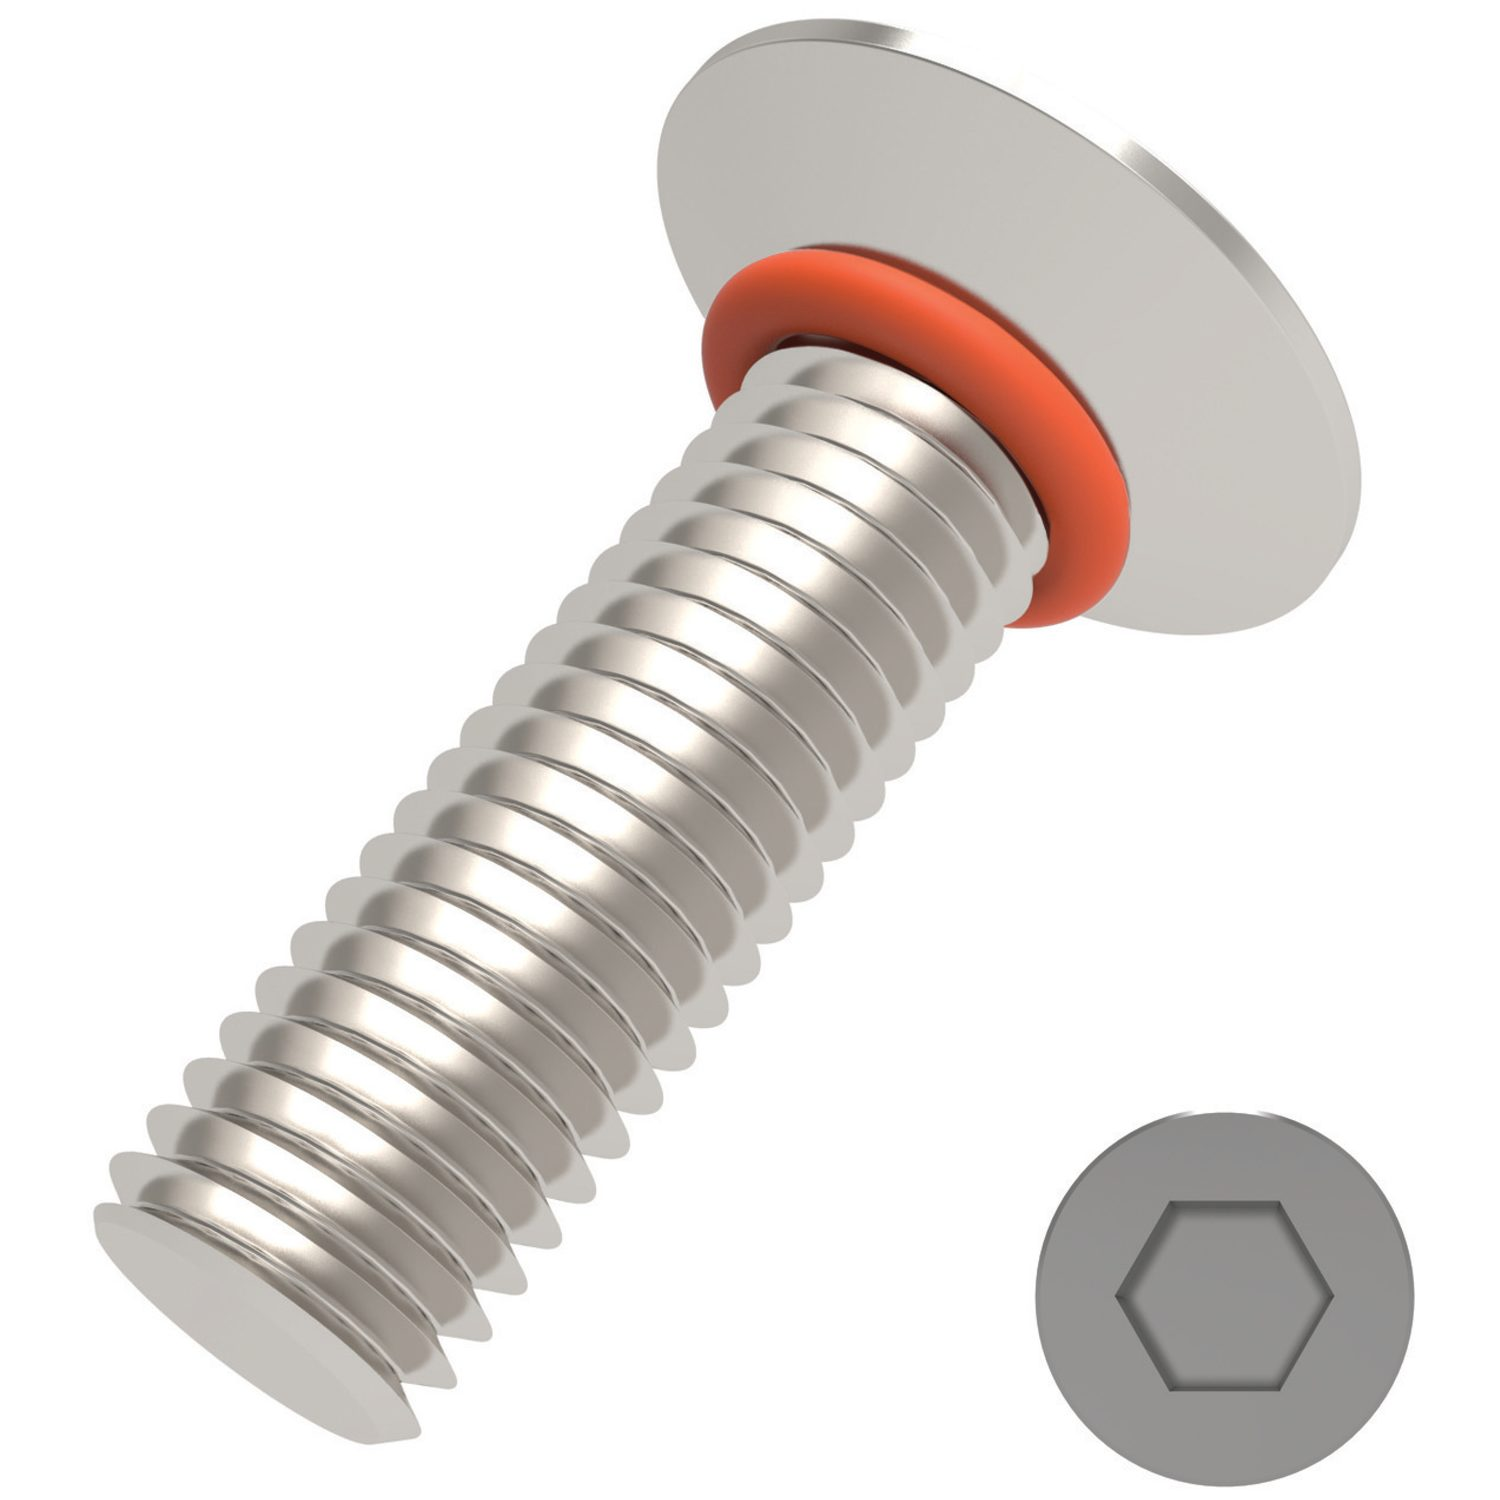 P0175 - Countersunk Seal Screws